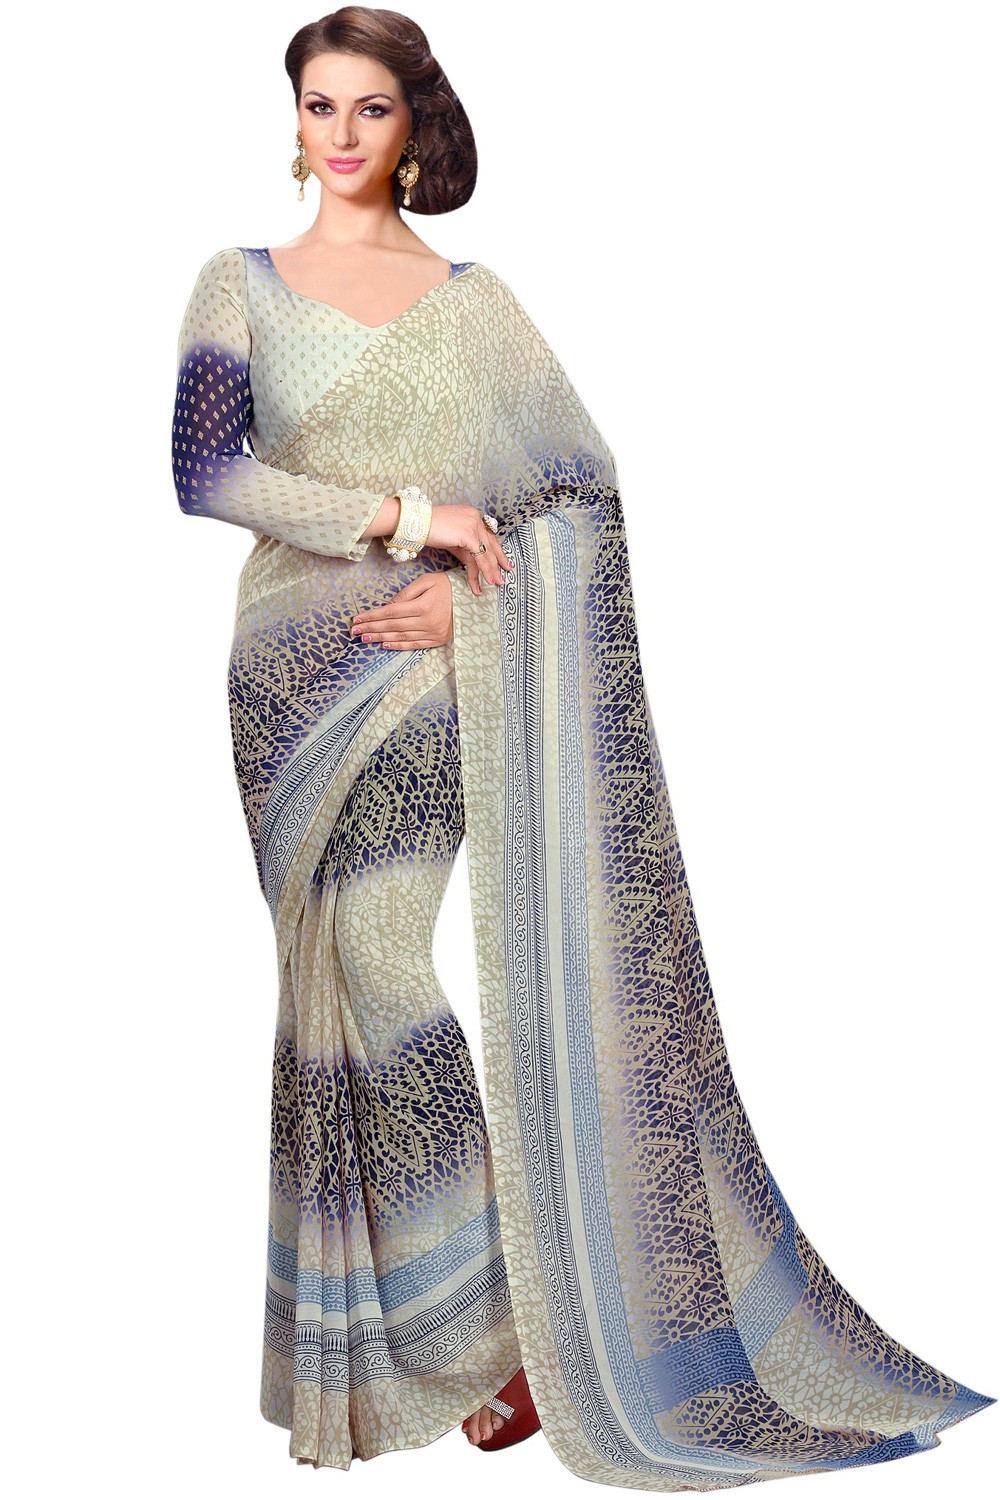 Paaneri Cream With  Blue Color Georgette Printed Saree Product Code-16120020812